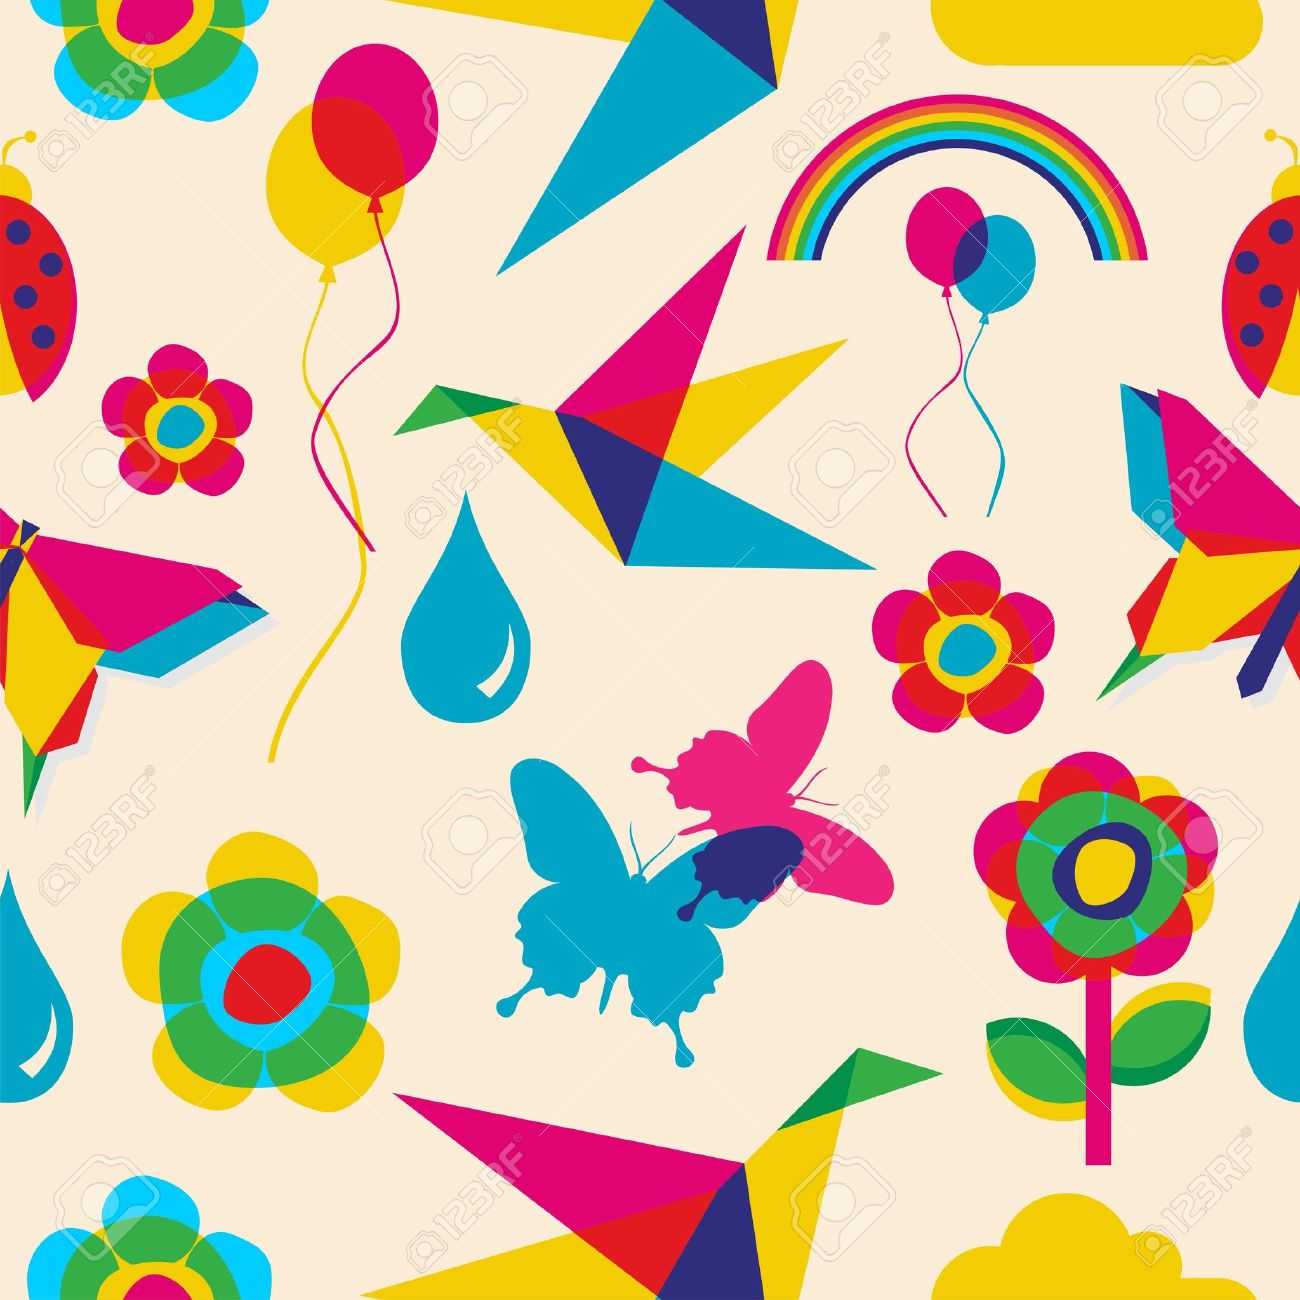 Colorfull spring summer origami seamless pattern file layered for easy manipulation and custom coloring Stock Vector - 14574477